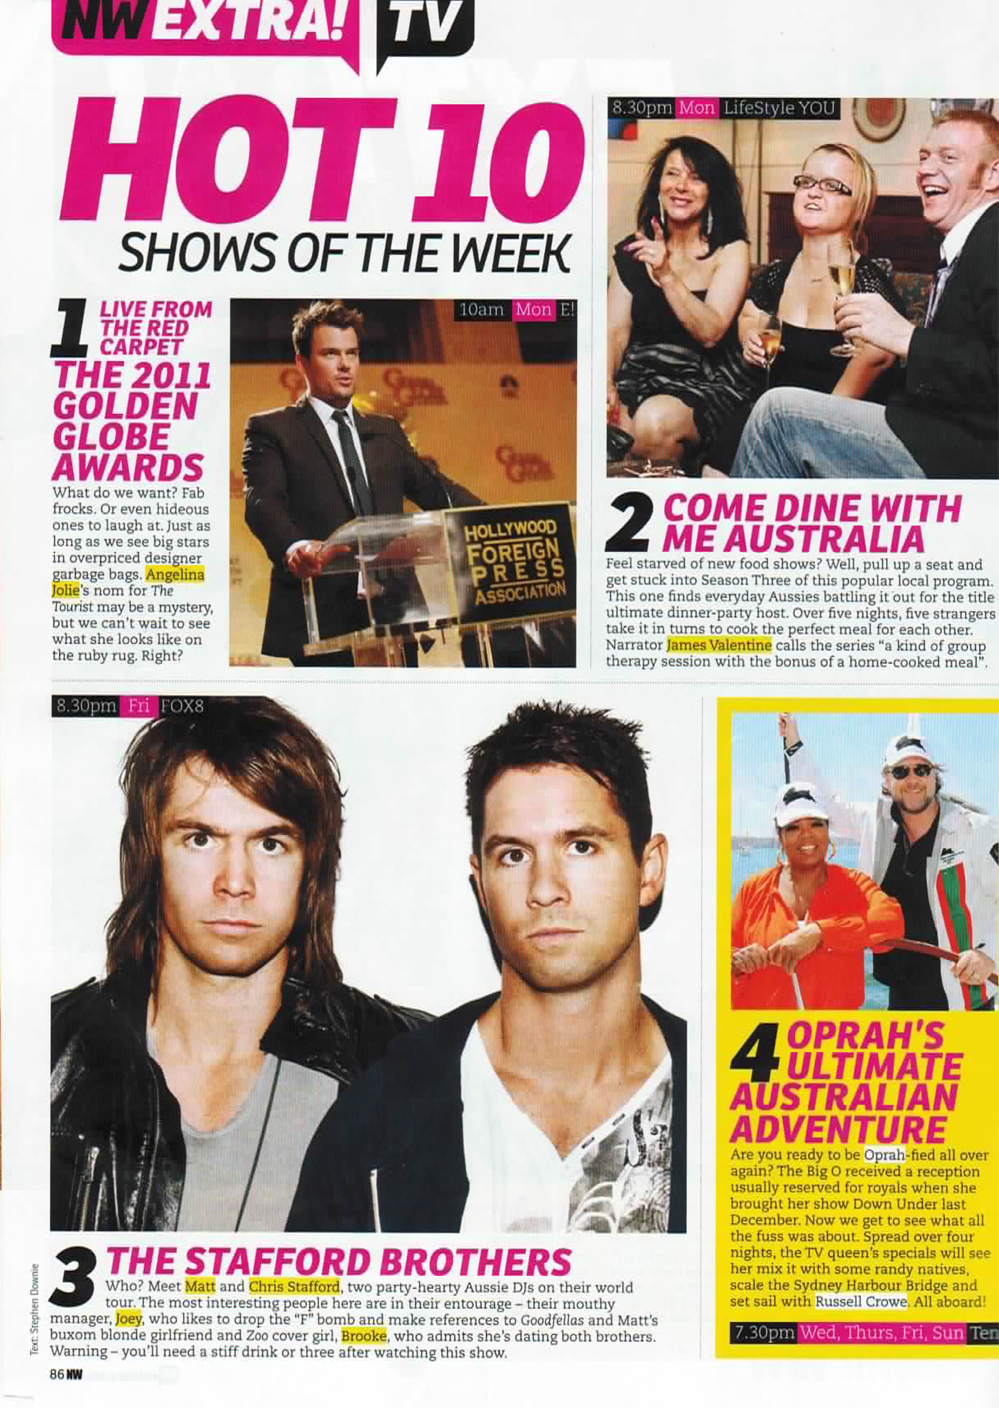 Stafford_Brothers_NW_Magazine_Jan24_2011.jpg